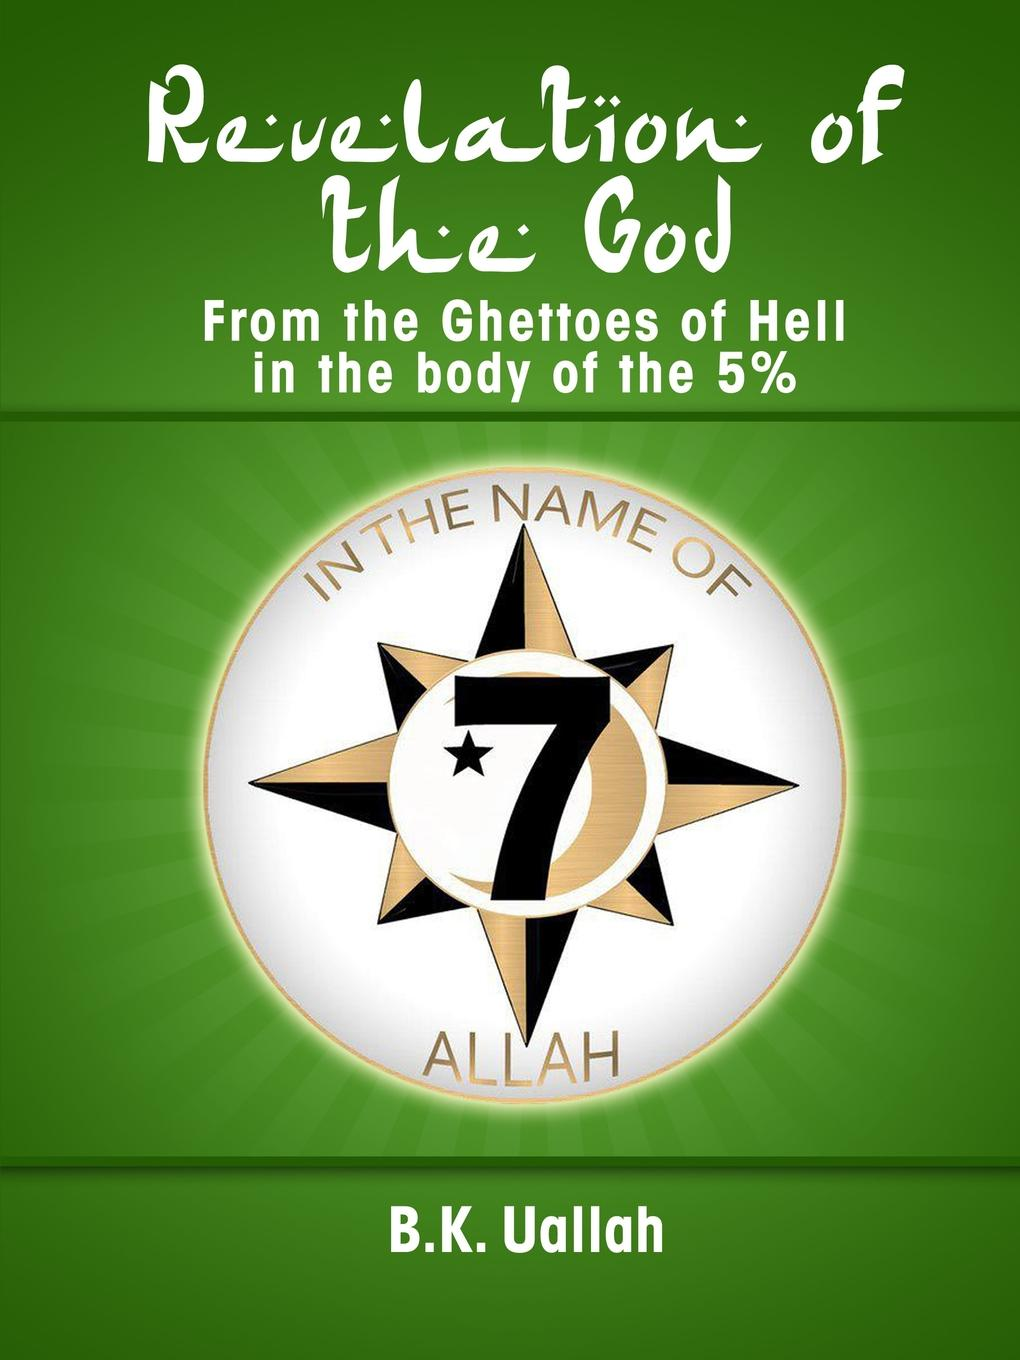 R. B. UAllah Revelation of the God from the Ghettoes of Hell in the Body of the 5. over to you